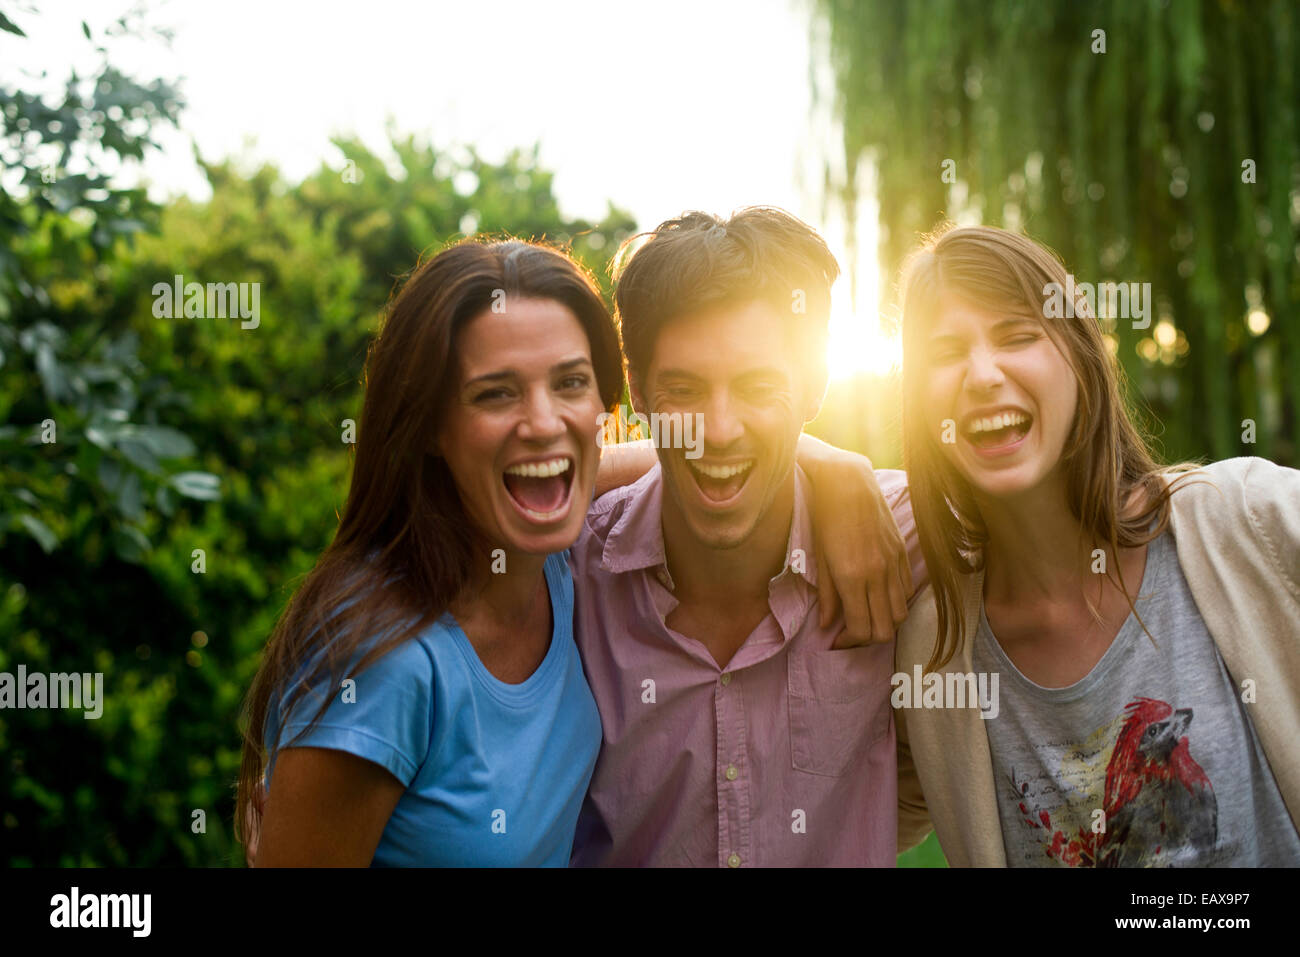 College friends having laughs together in park - Stock Image